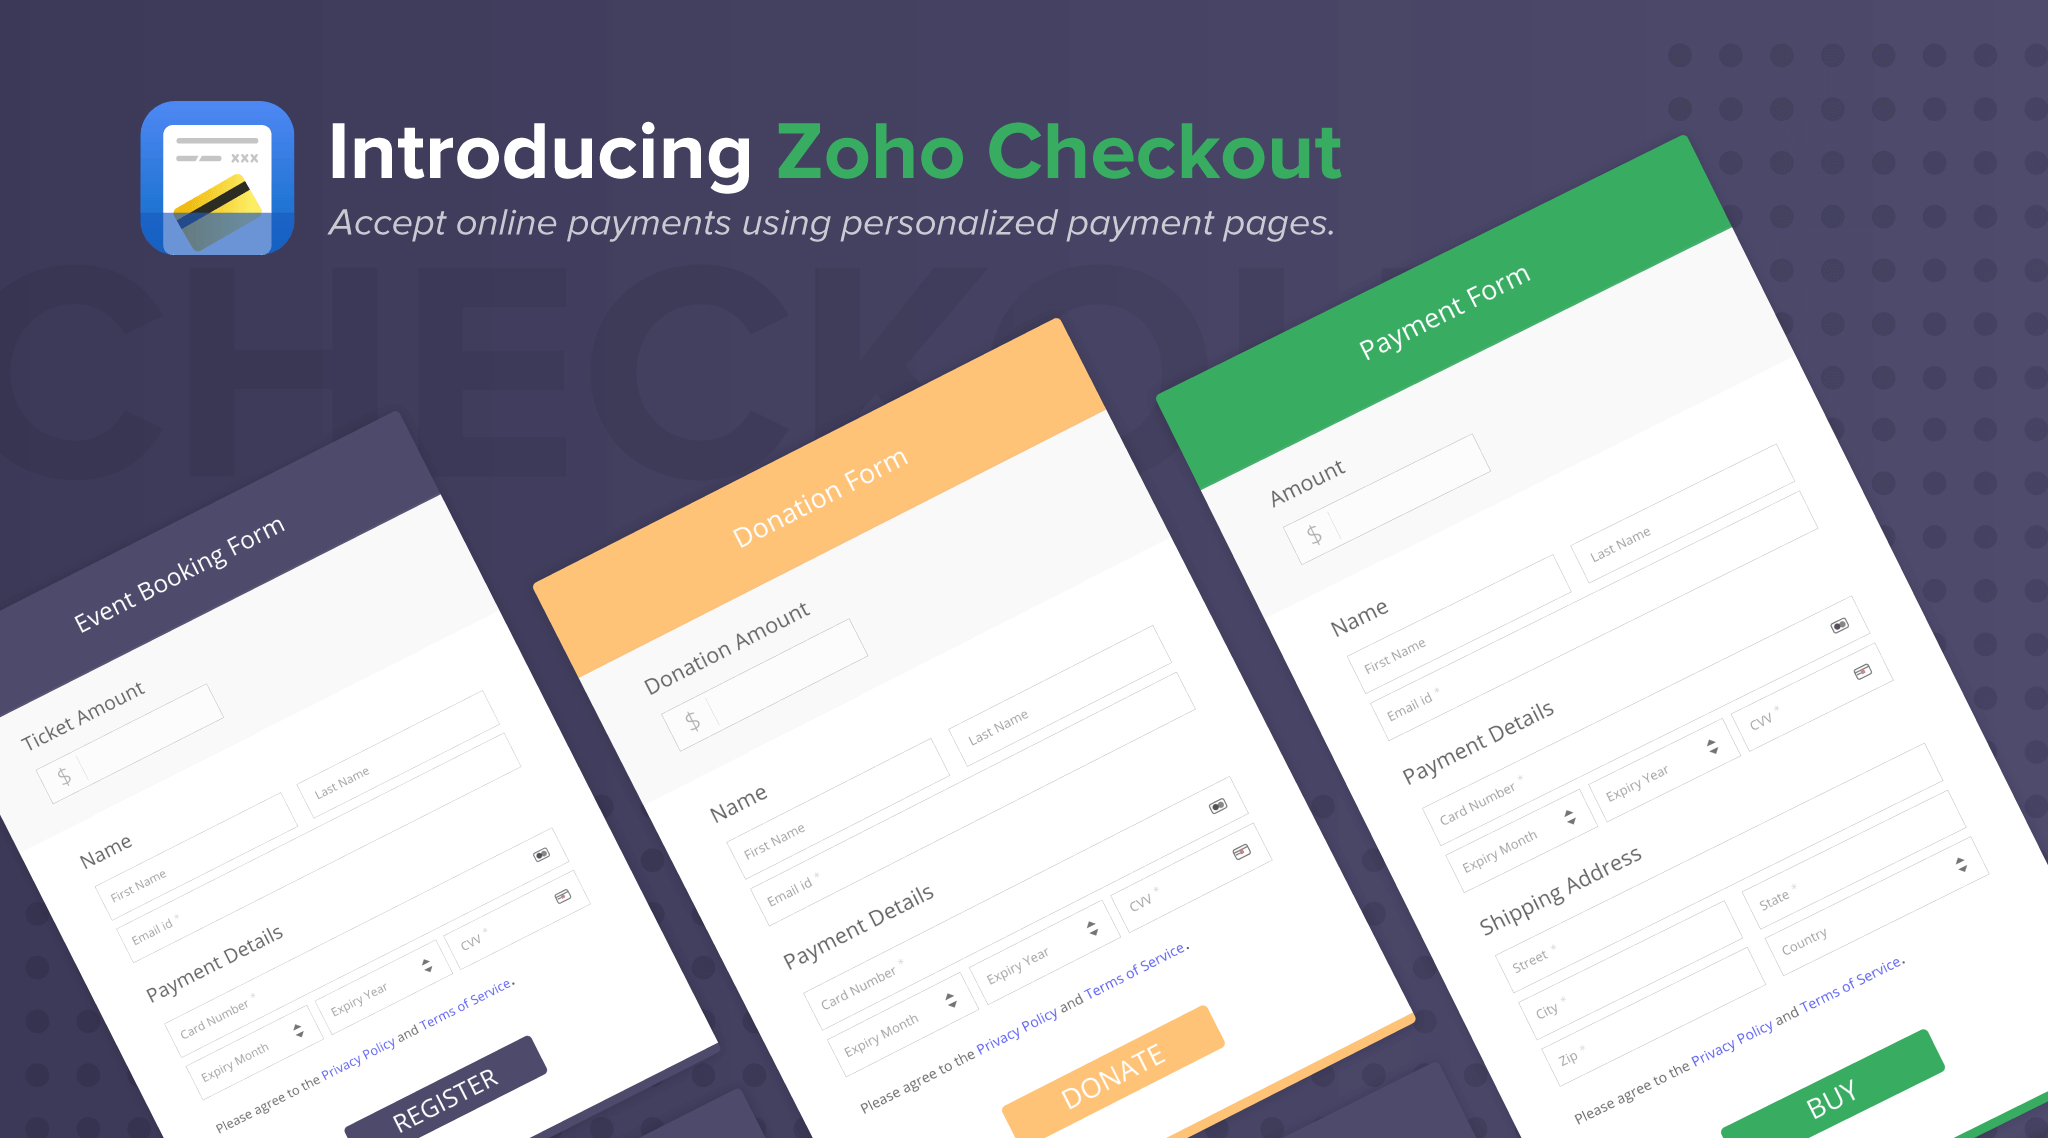 Introducing Zoho Checkout: Making online payments painless.